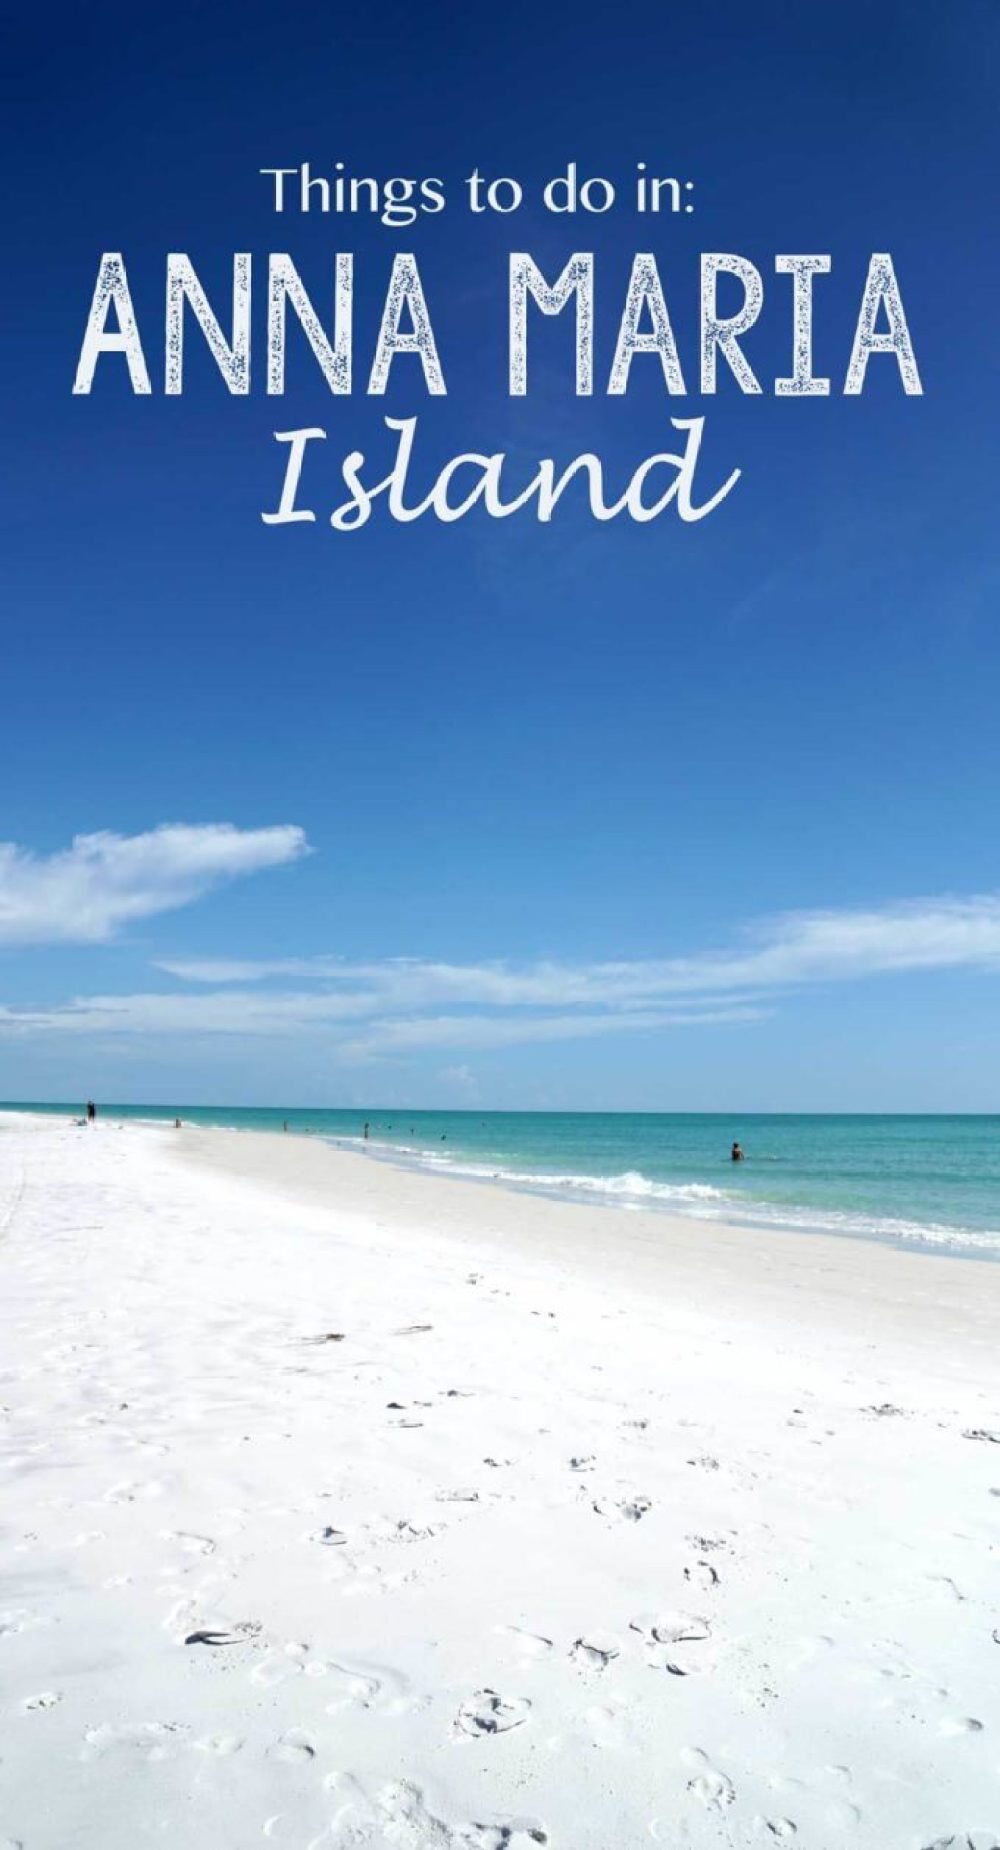 Anna Maria Island is in west Florida near Tampa